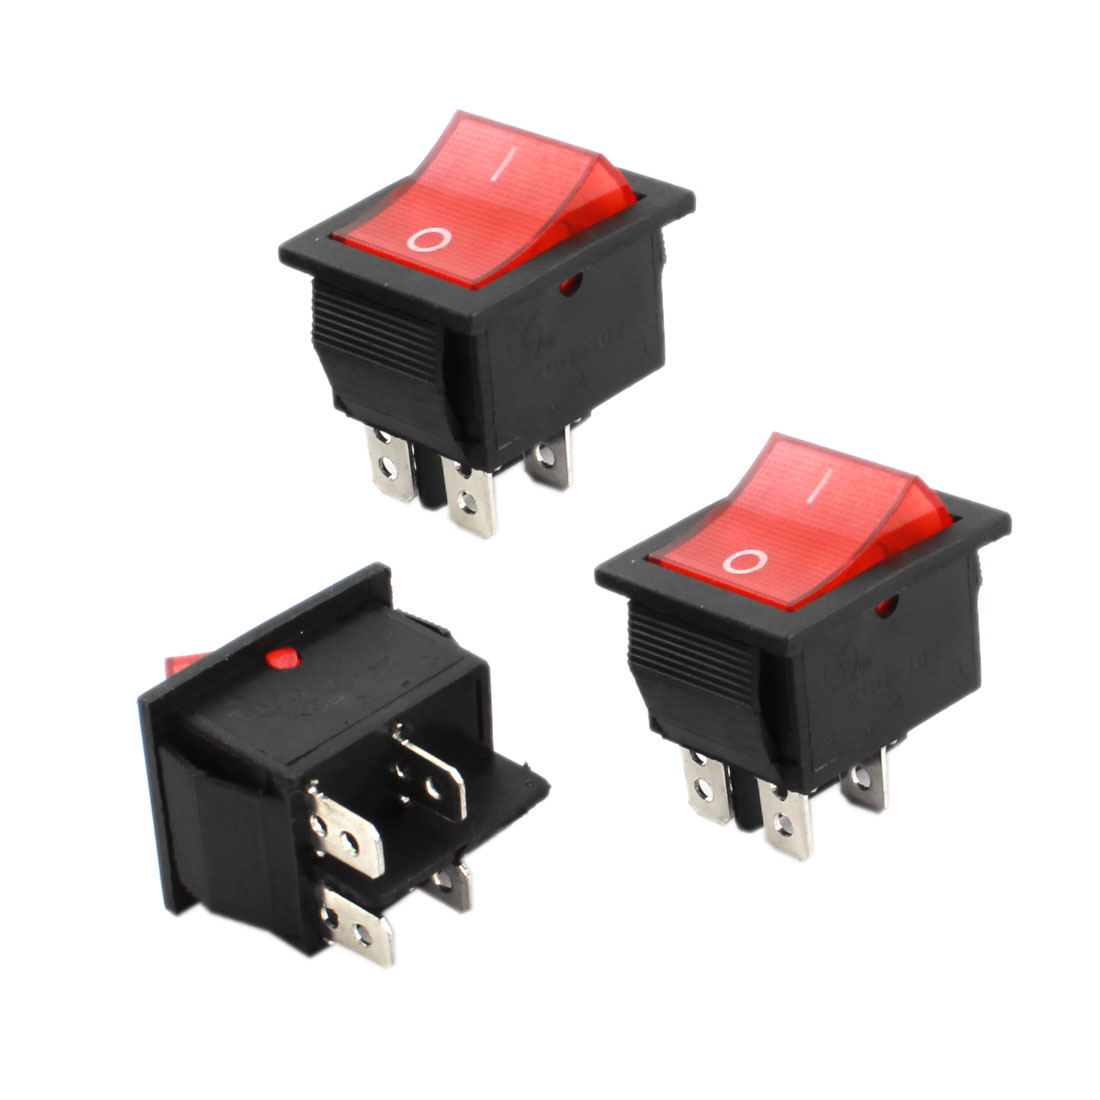 3Pcs AC 220V/5A 4 Pin SPDT ON/OFF Red Head Power Control Boat Rocker Switch